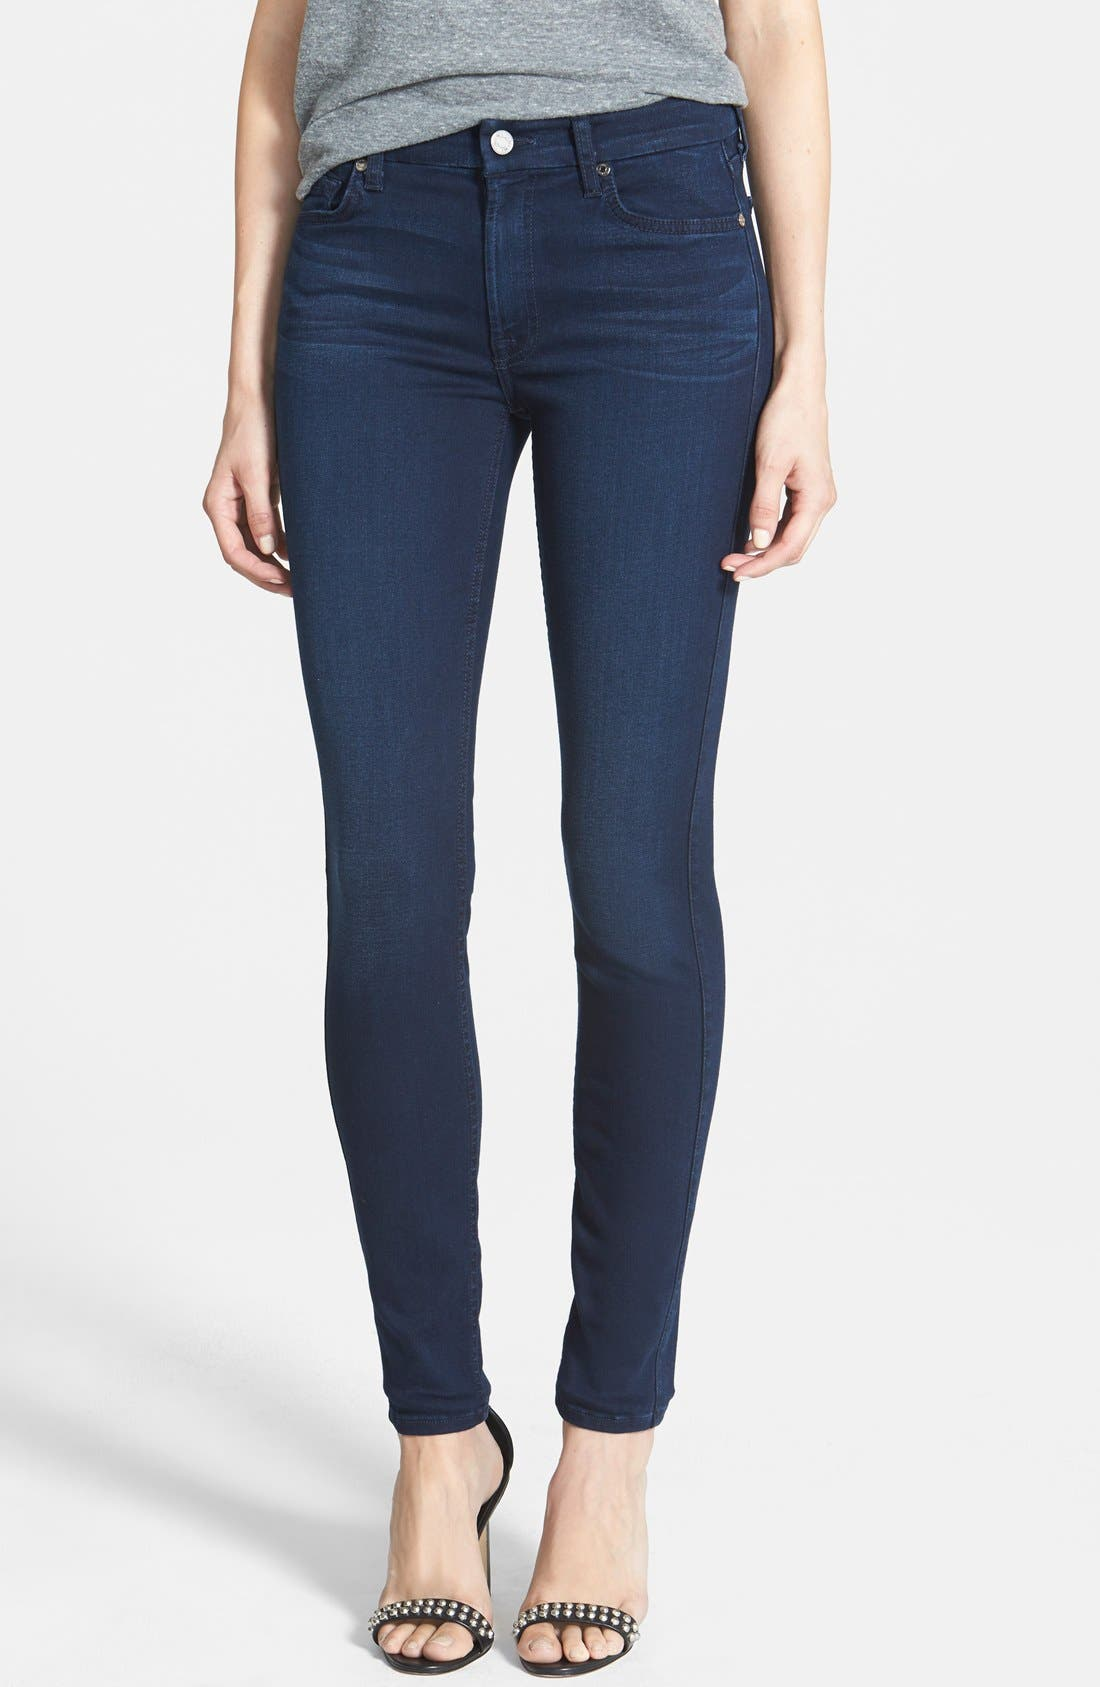 Alternate Image 1 Selected - 7 For All Mankind® 'Slim Illusion Luxe' Mid Rise Skinny Jeans (Rich Blue)